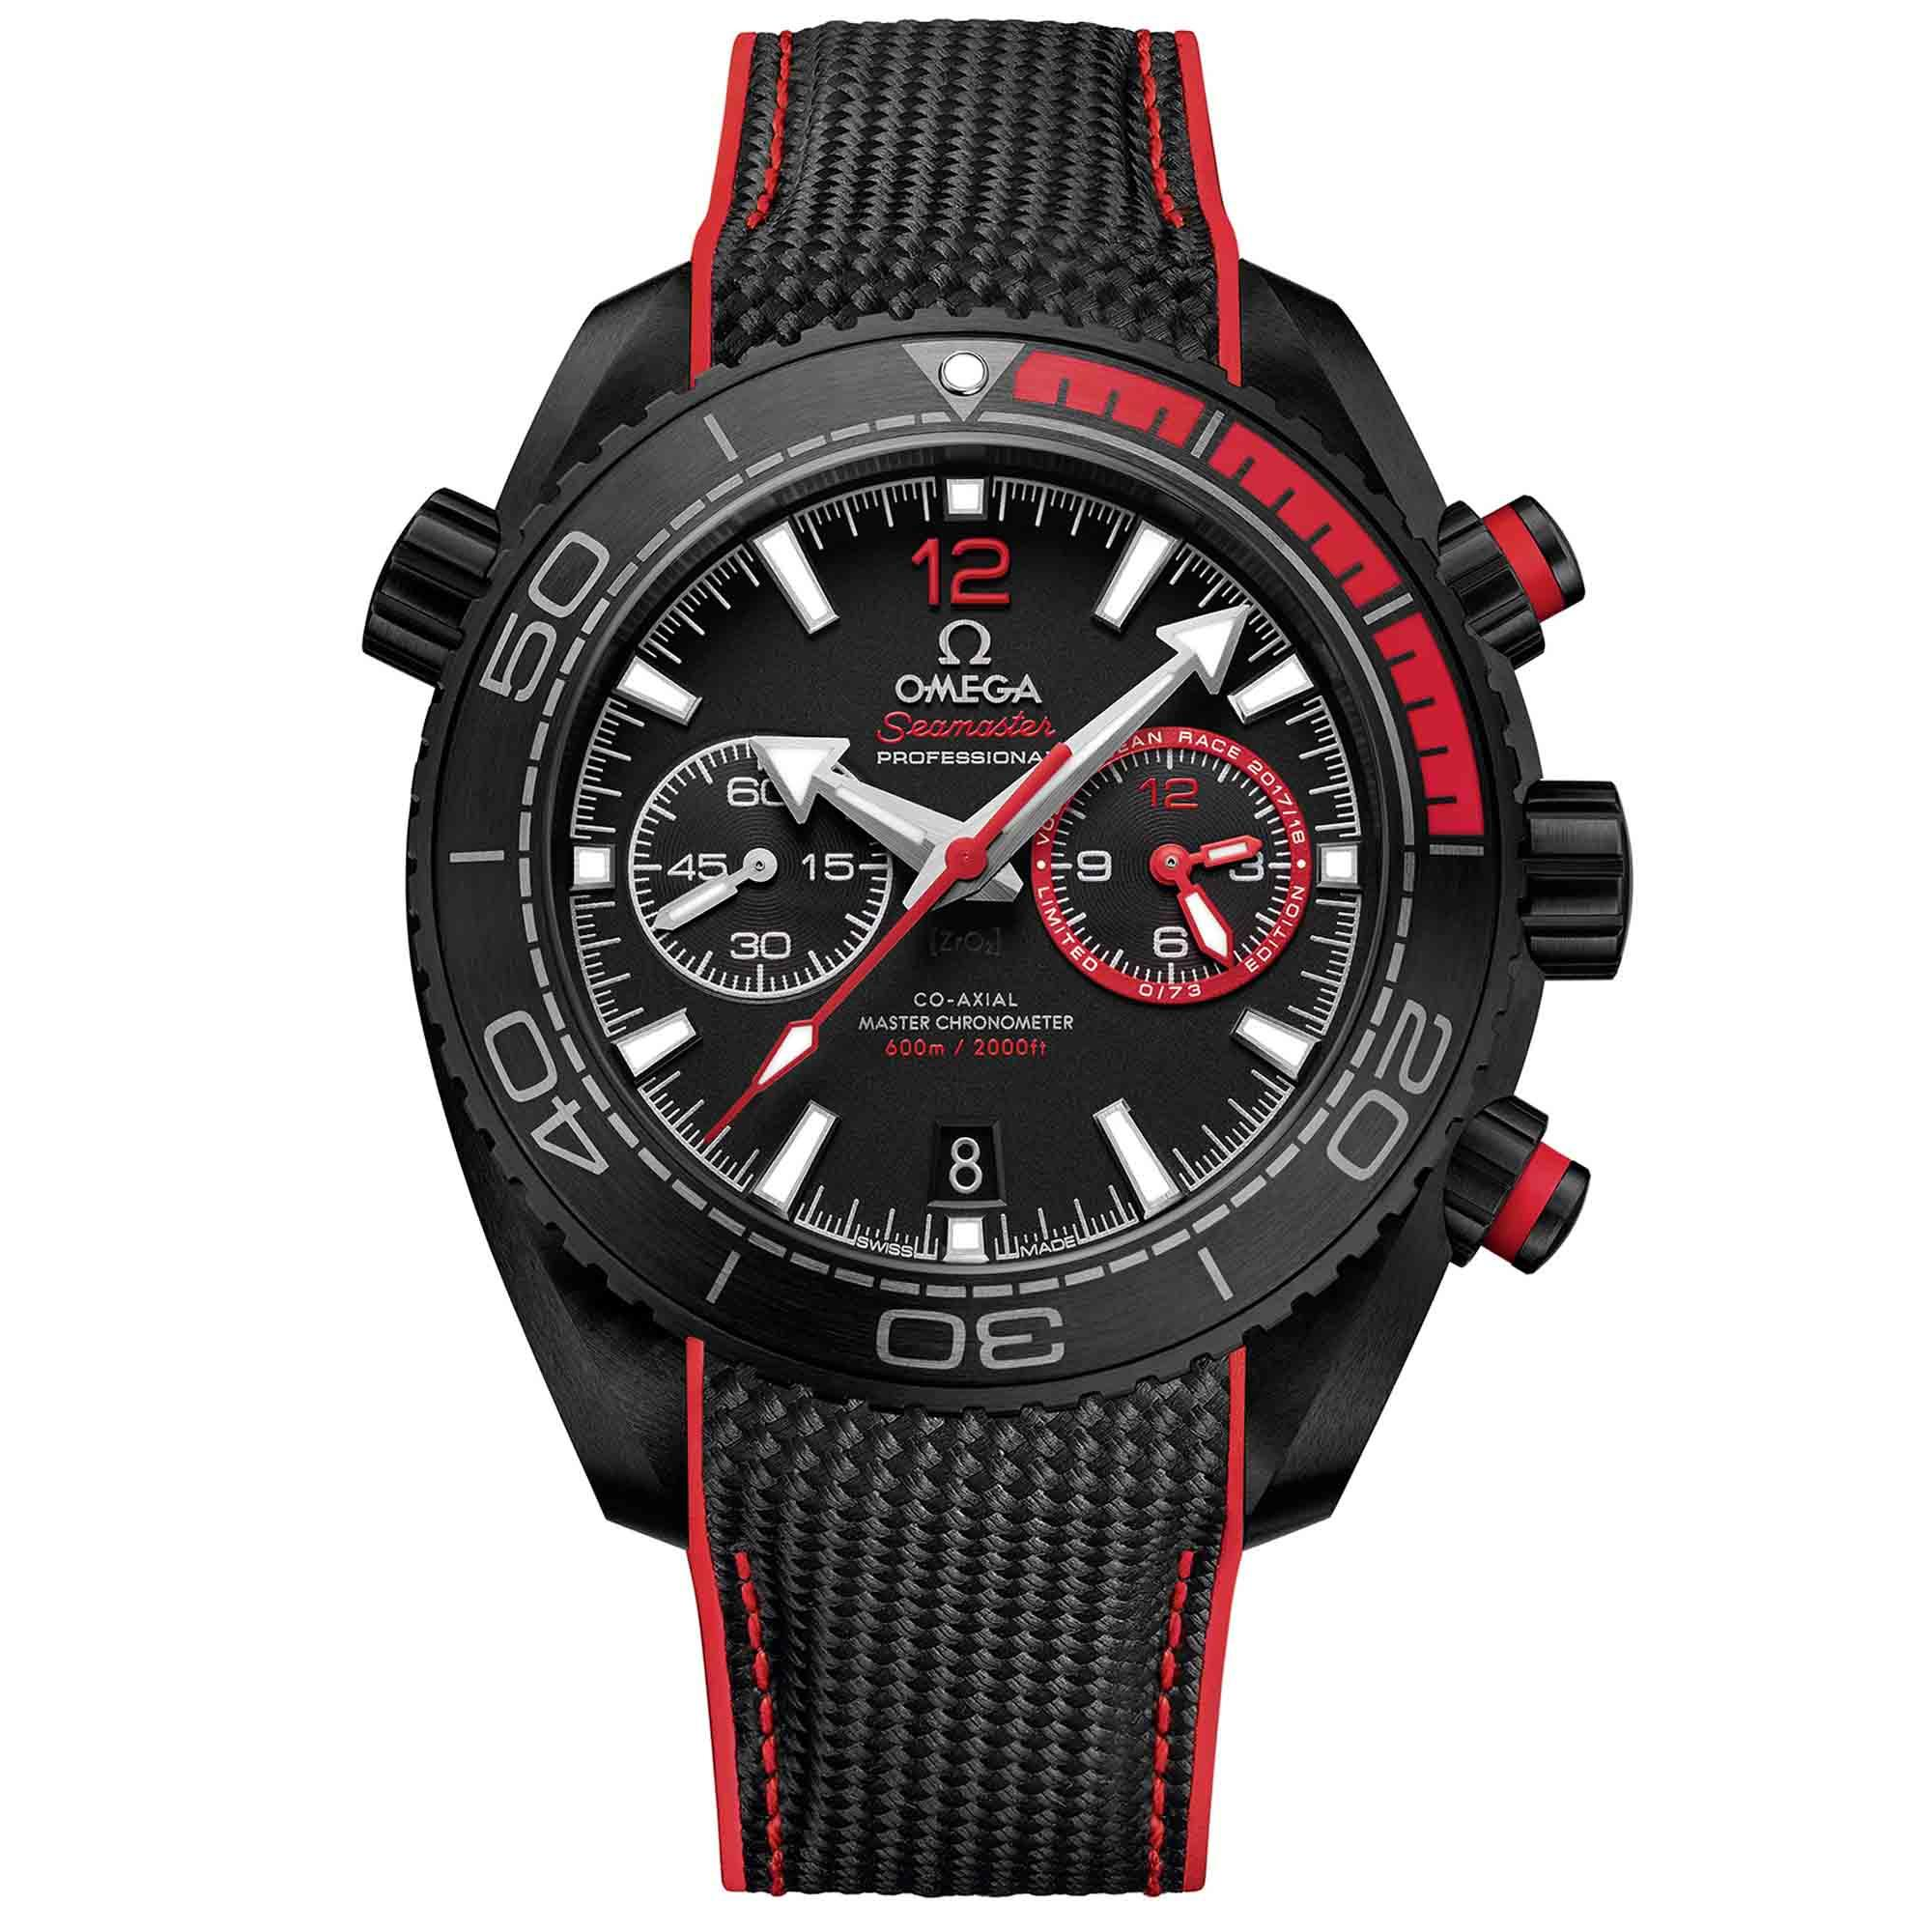 Omega - Seamaster Planet Ocean 600 M Co-Axial Master Chronometer Chronograph Volvo Ocean Race